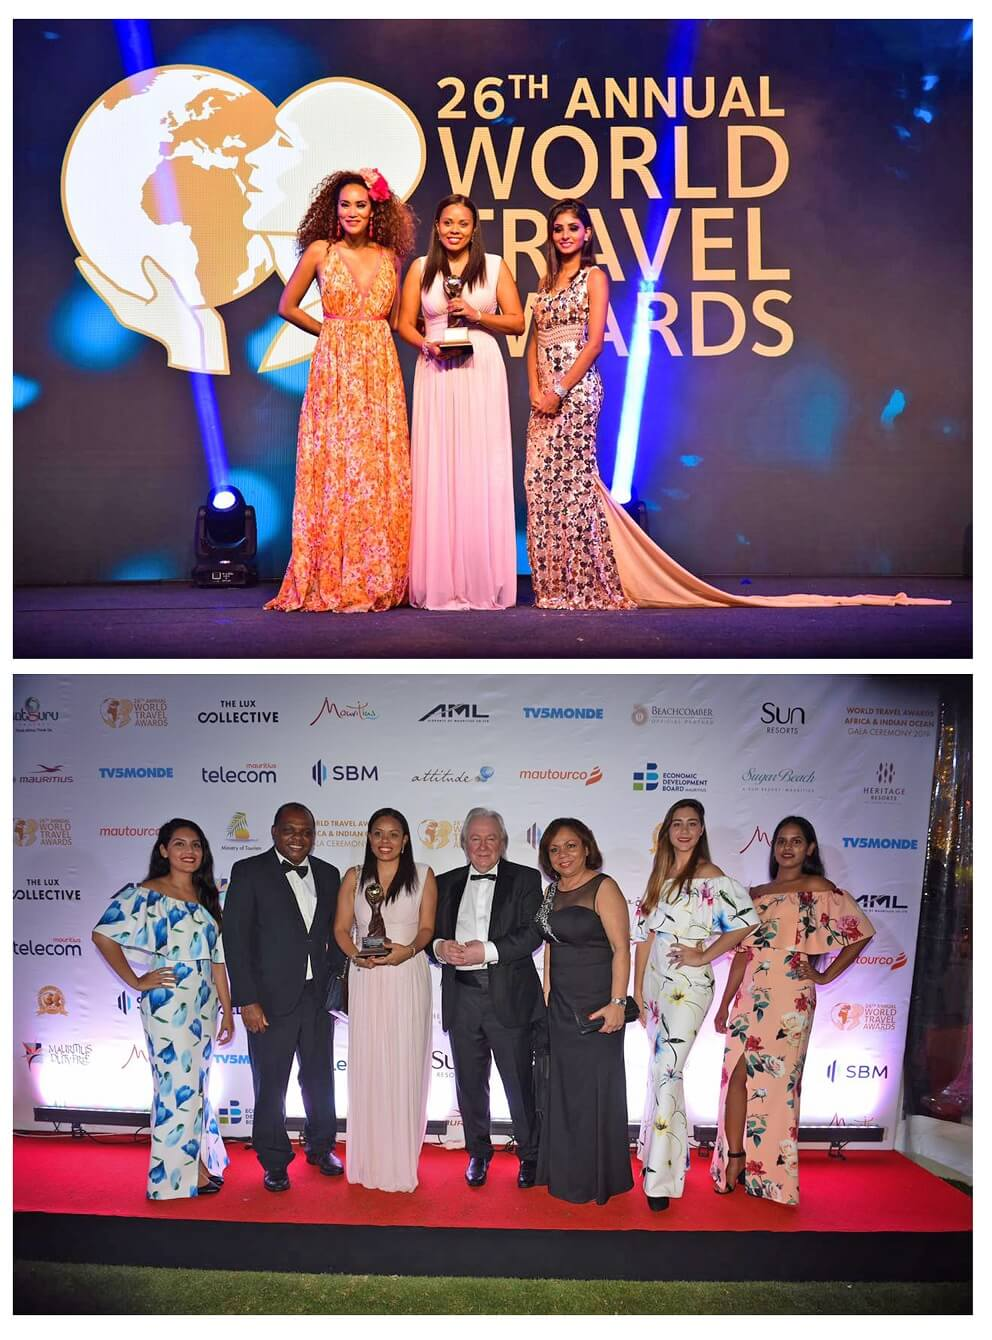 Seychelles shines in all splendor as Indian Ocean's Leading Sustainable Tourism Destination 2019 in Mauritius